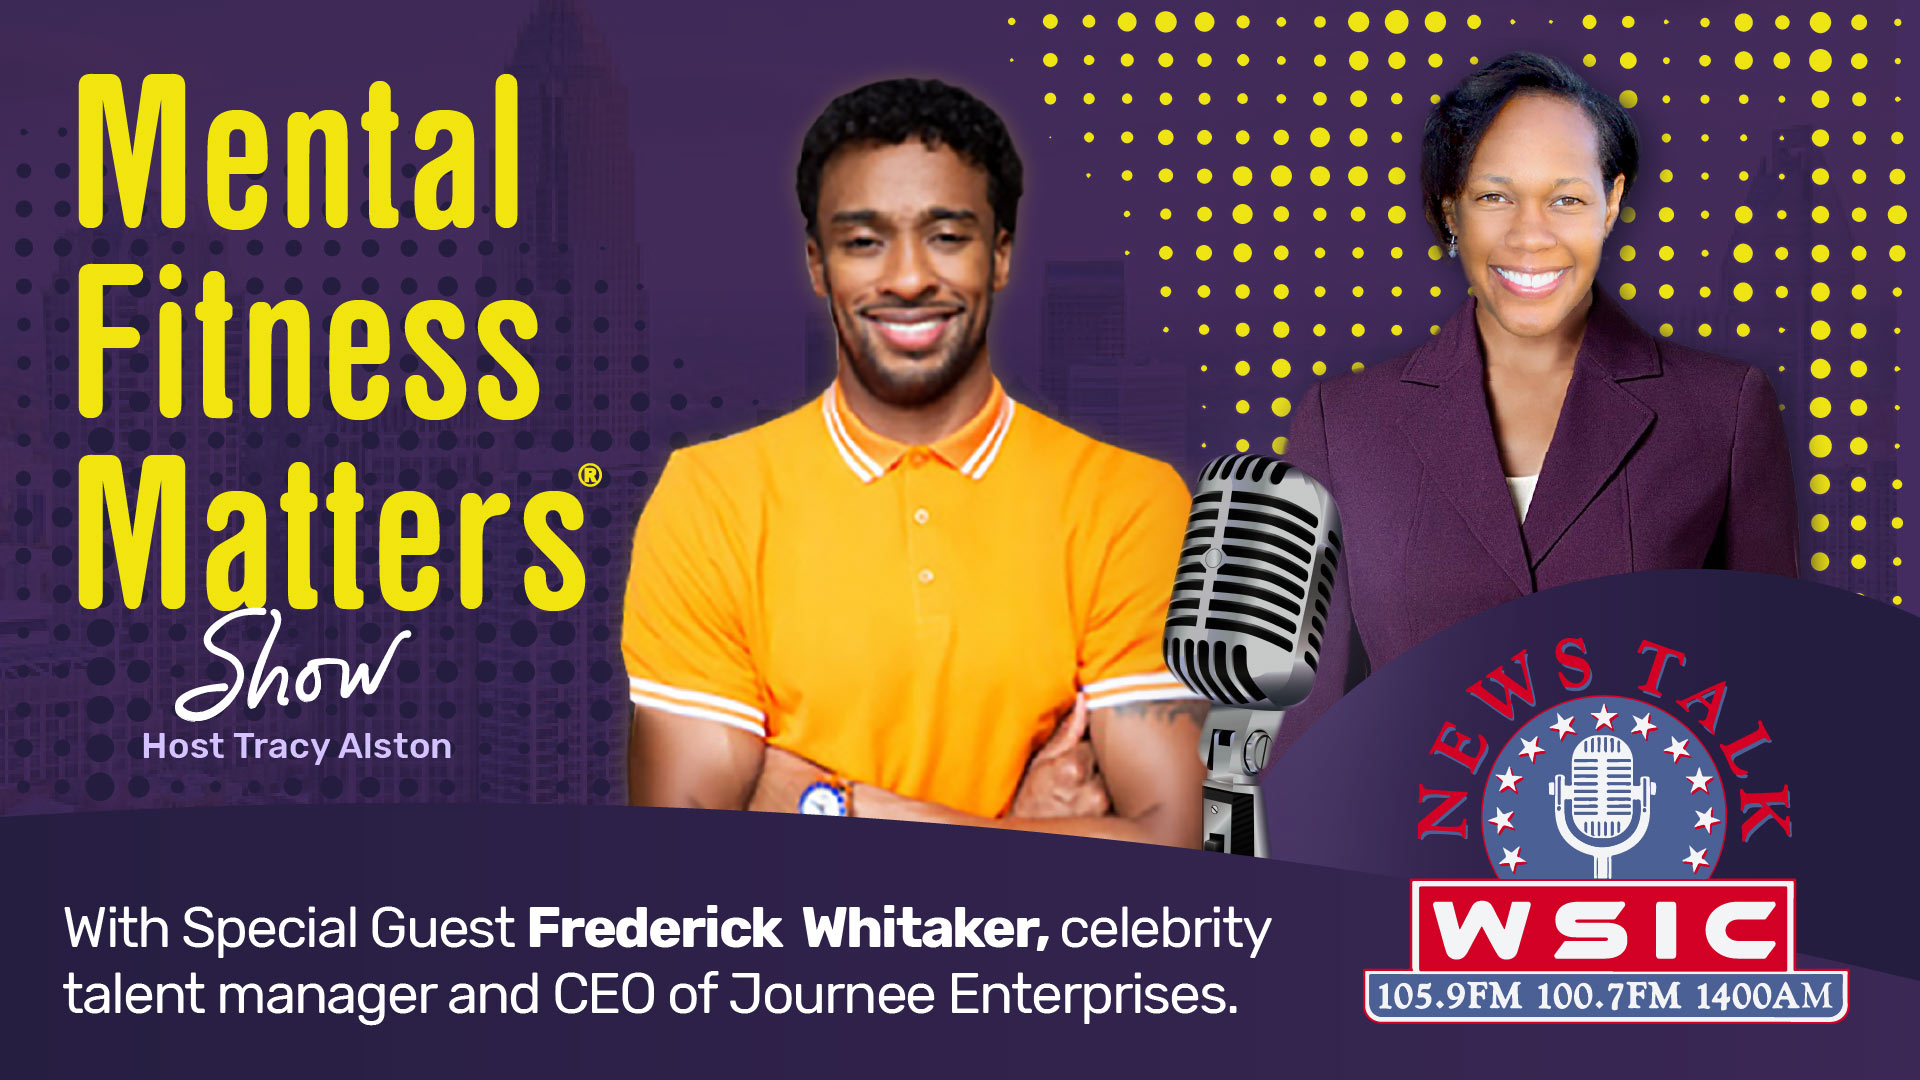 The Mental Fitness Journey of Frederick Whitaker, a Celebrity Talent Manager